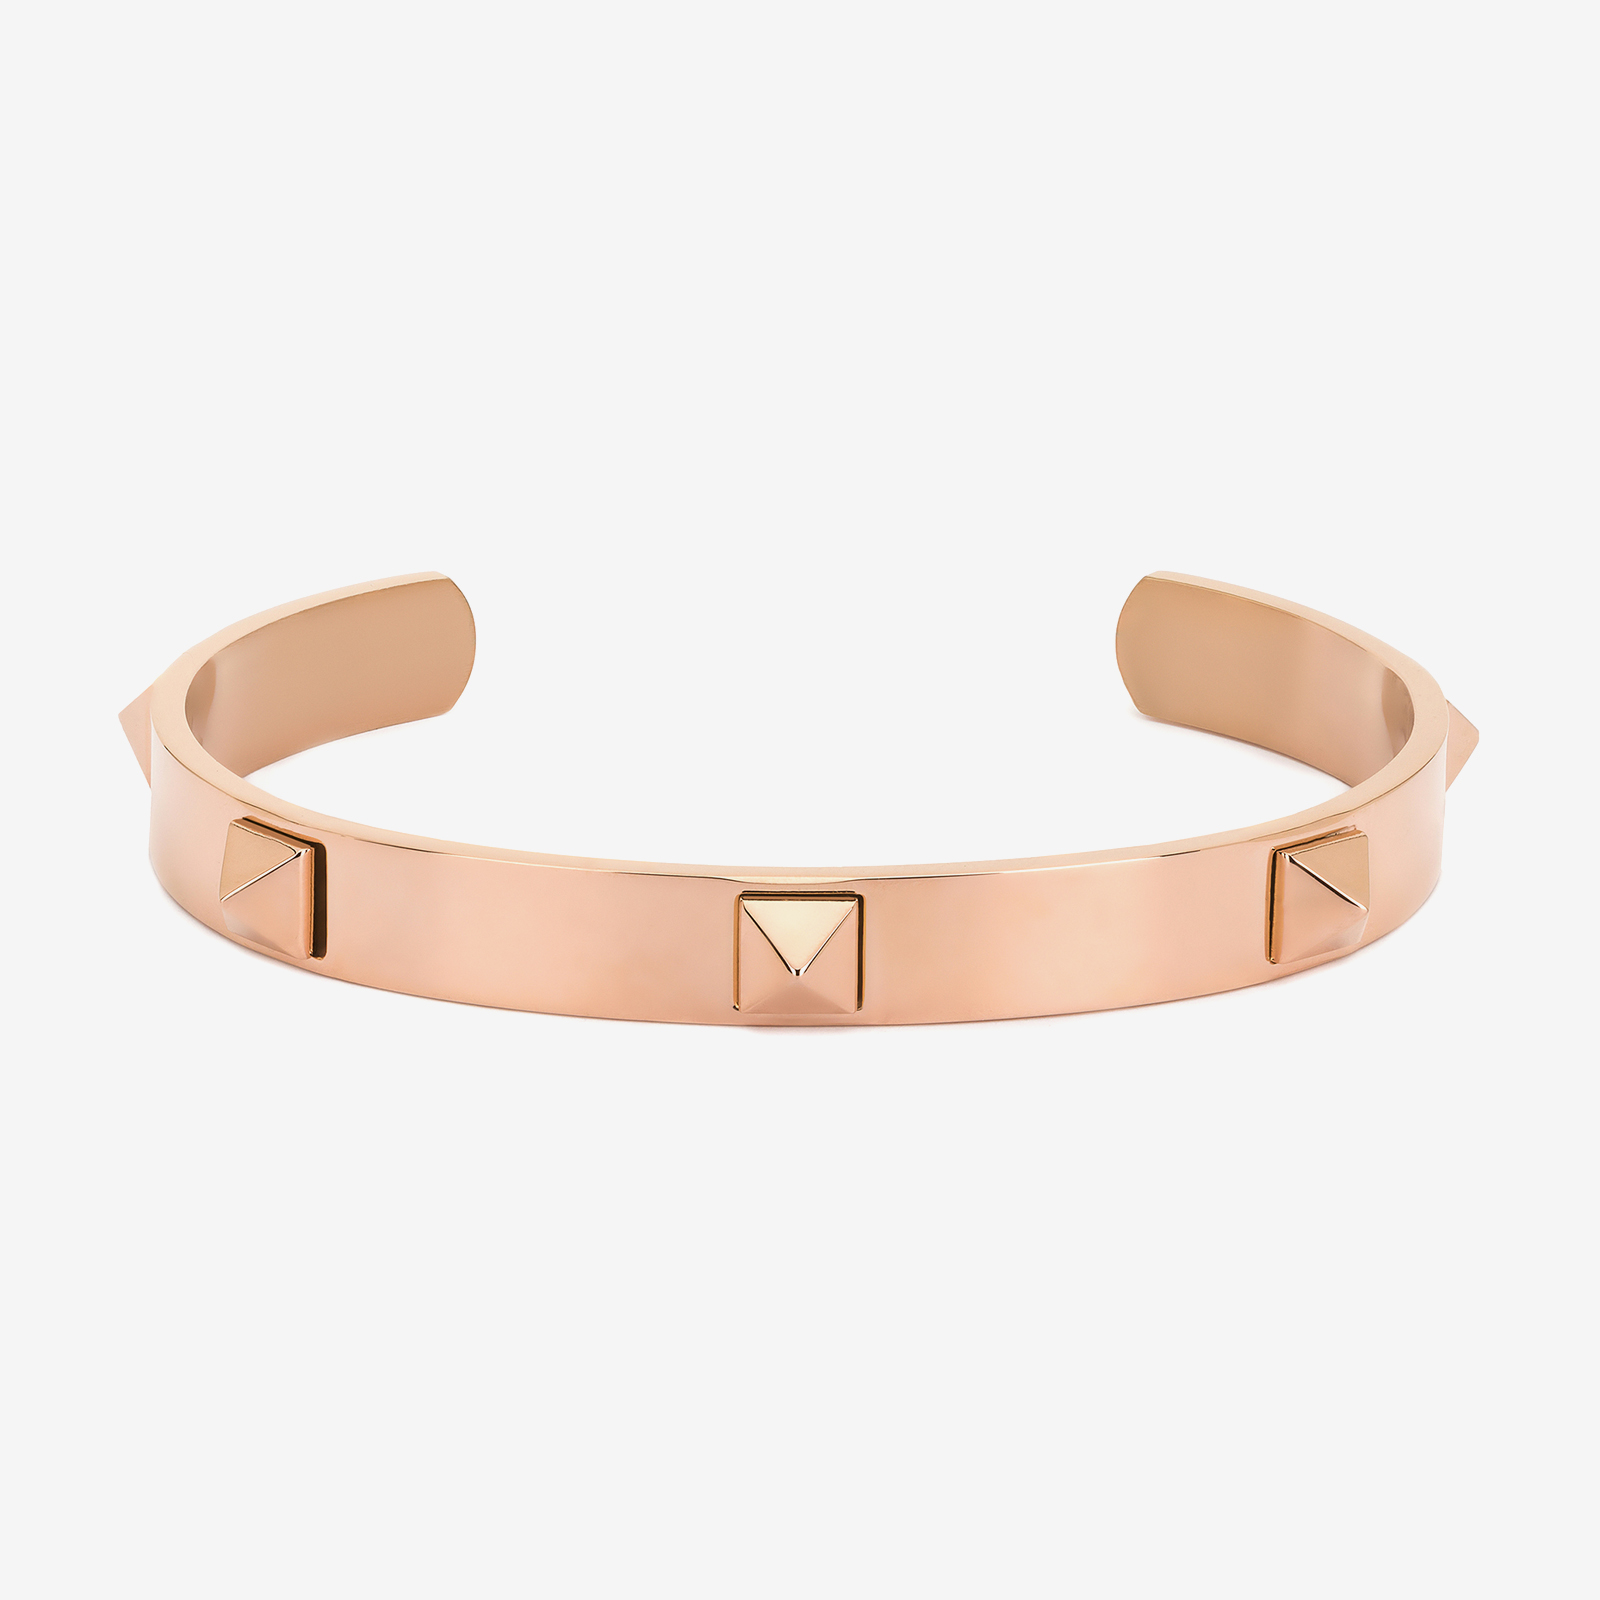 Rose gold bracelet product photography